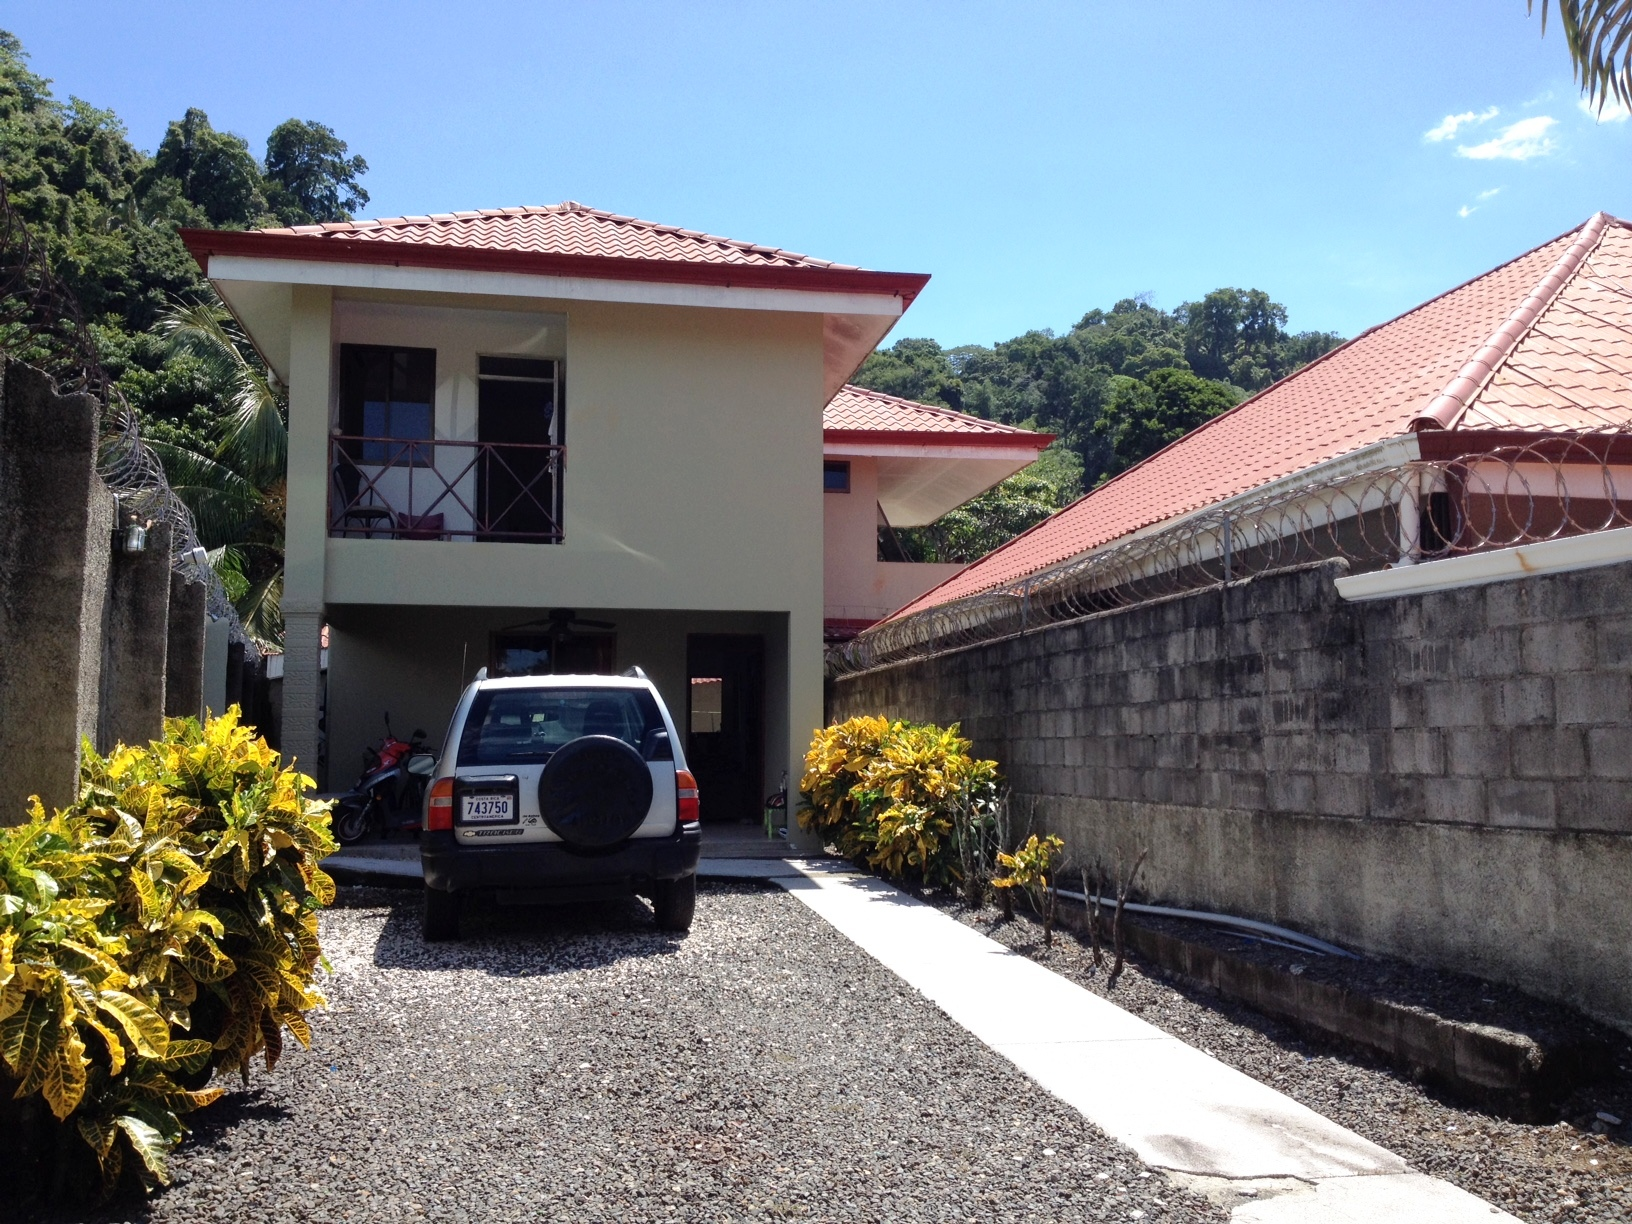 playa jaco costa rica map with Sunset Jaco Beach House For Sale on 379498706073927726 as well Subpage in addition Costa Rica together with Costa Rica additionally Hotel Review G309271 D300732 Reviews Cabinas Alice Jaco Province of Puntarenas.